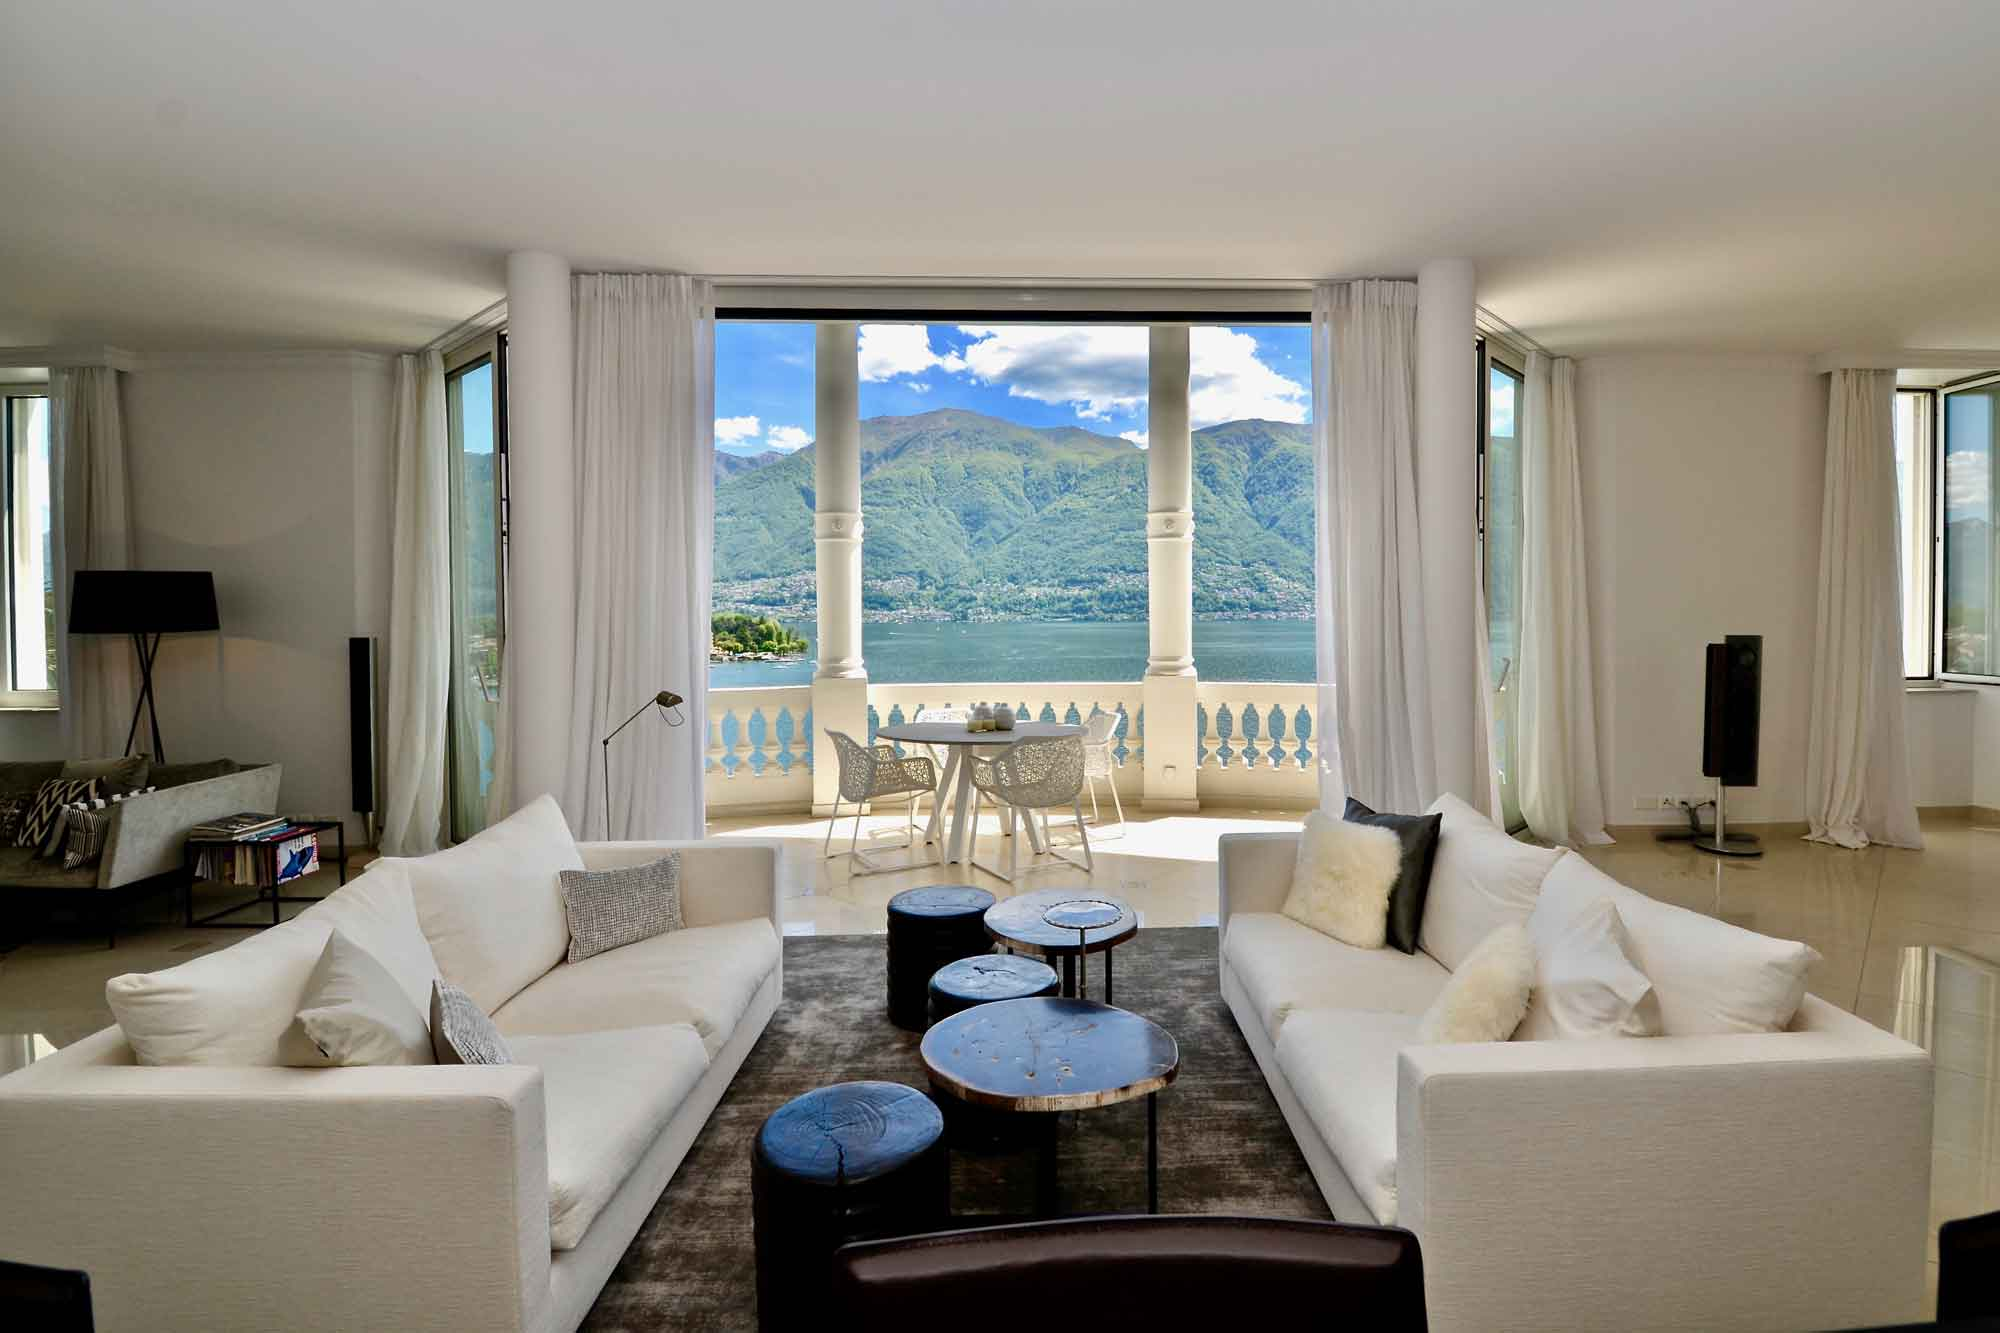 """Lake Maggiore's blue depths resonate through vistas offered by this unique """"sky chalet"""" penthouse in Ticino, Switzerland."""